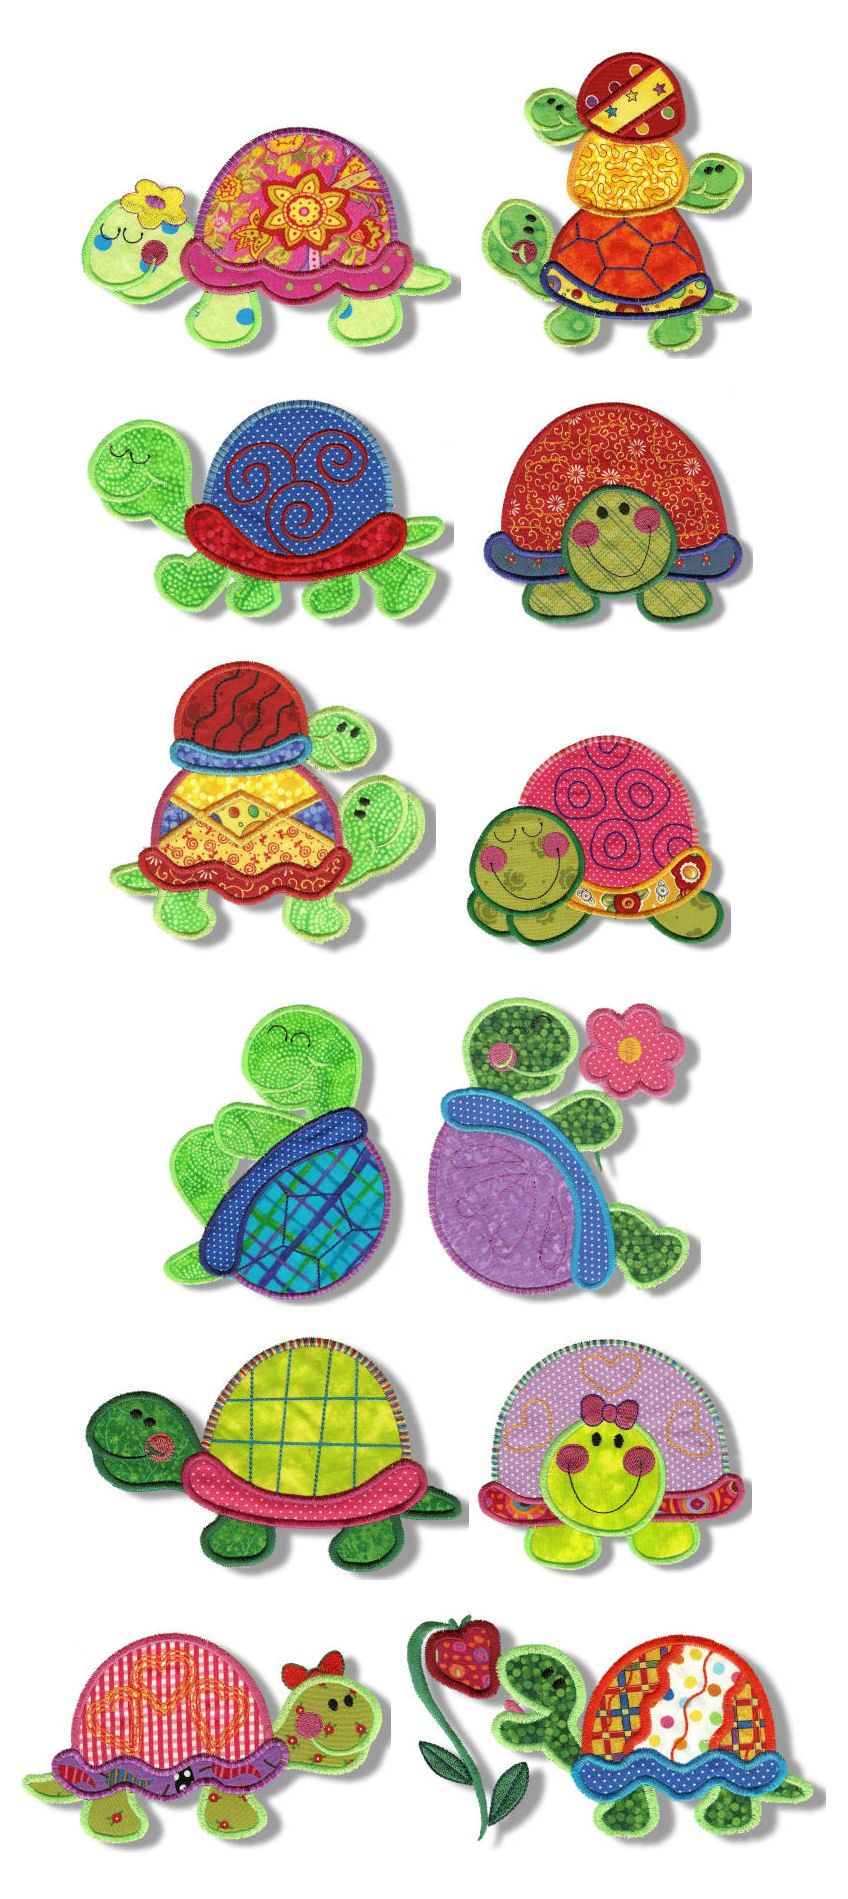 Embroidery machine embroidery designs totally turtles applique